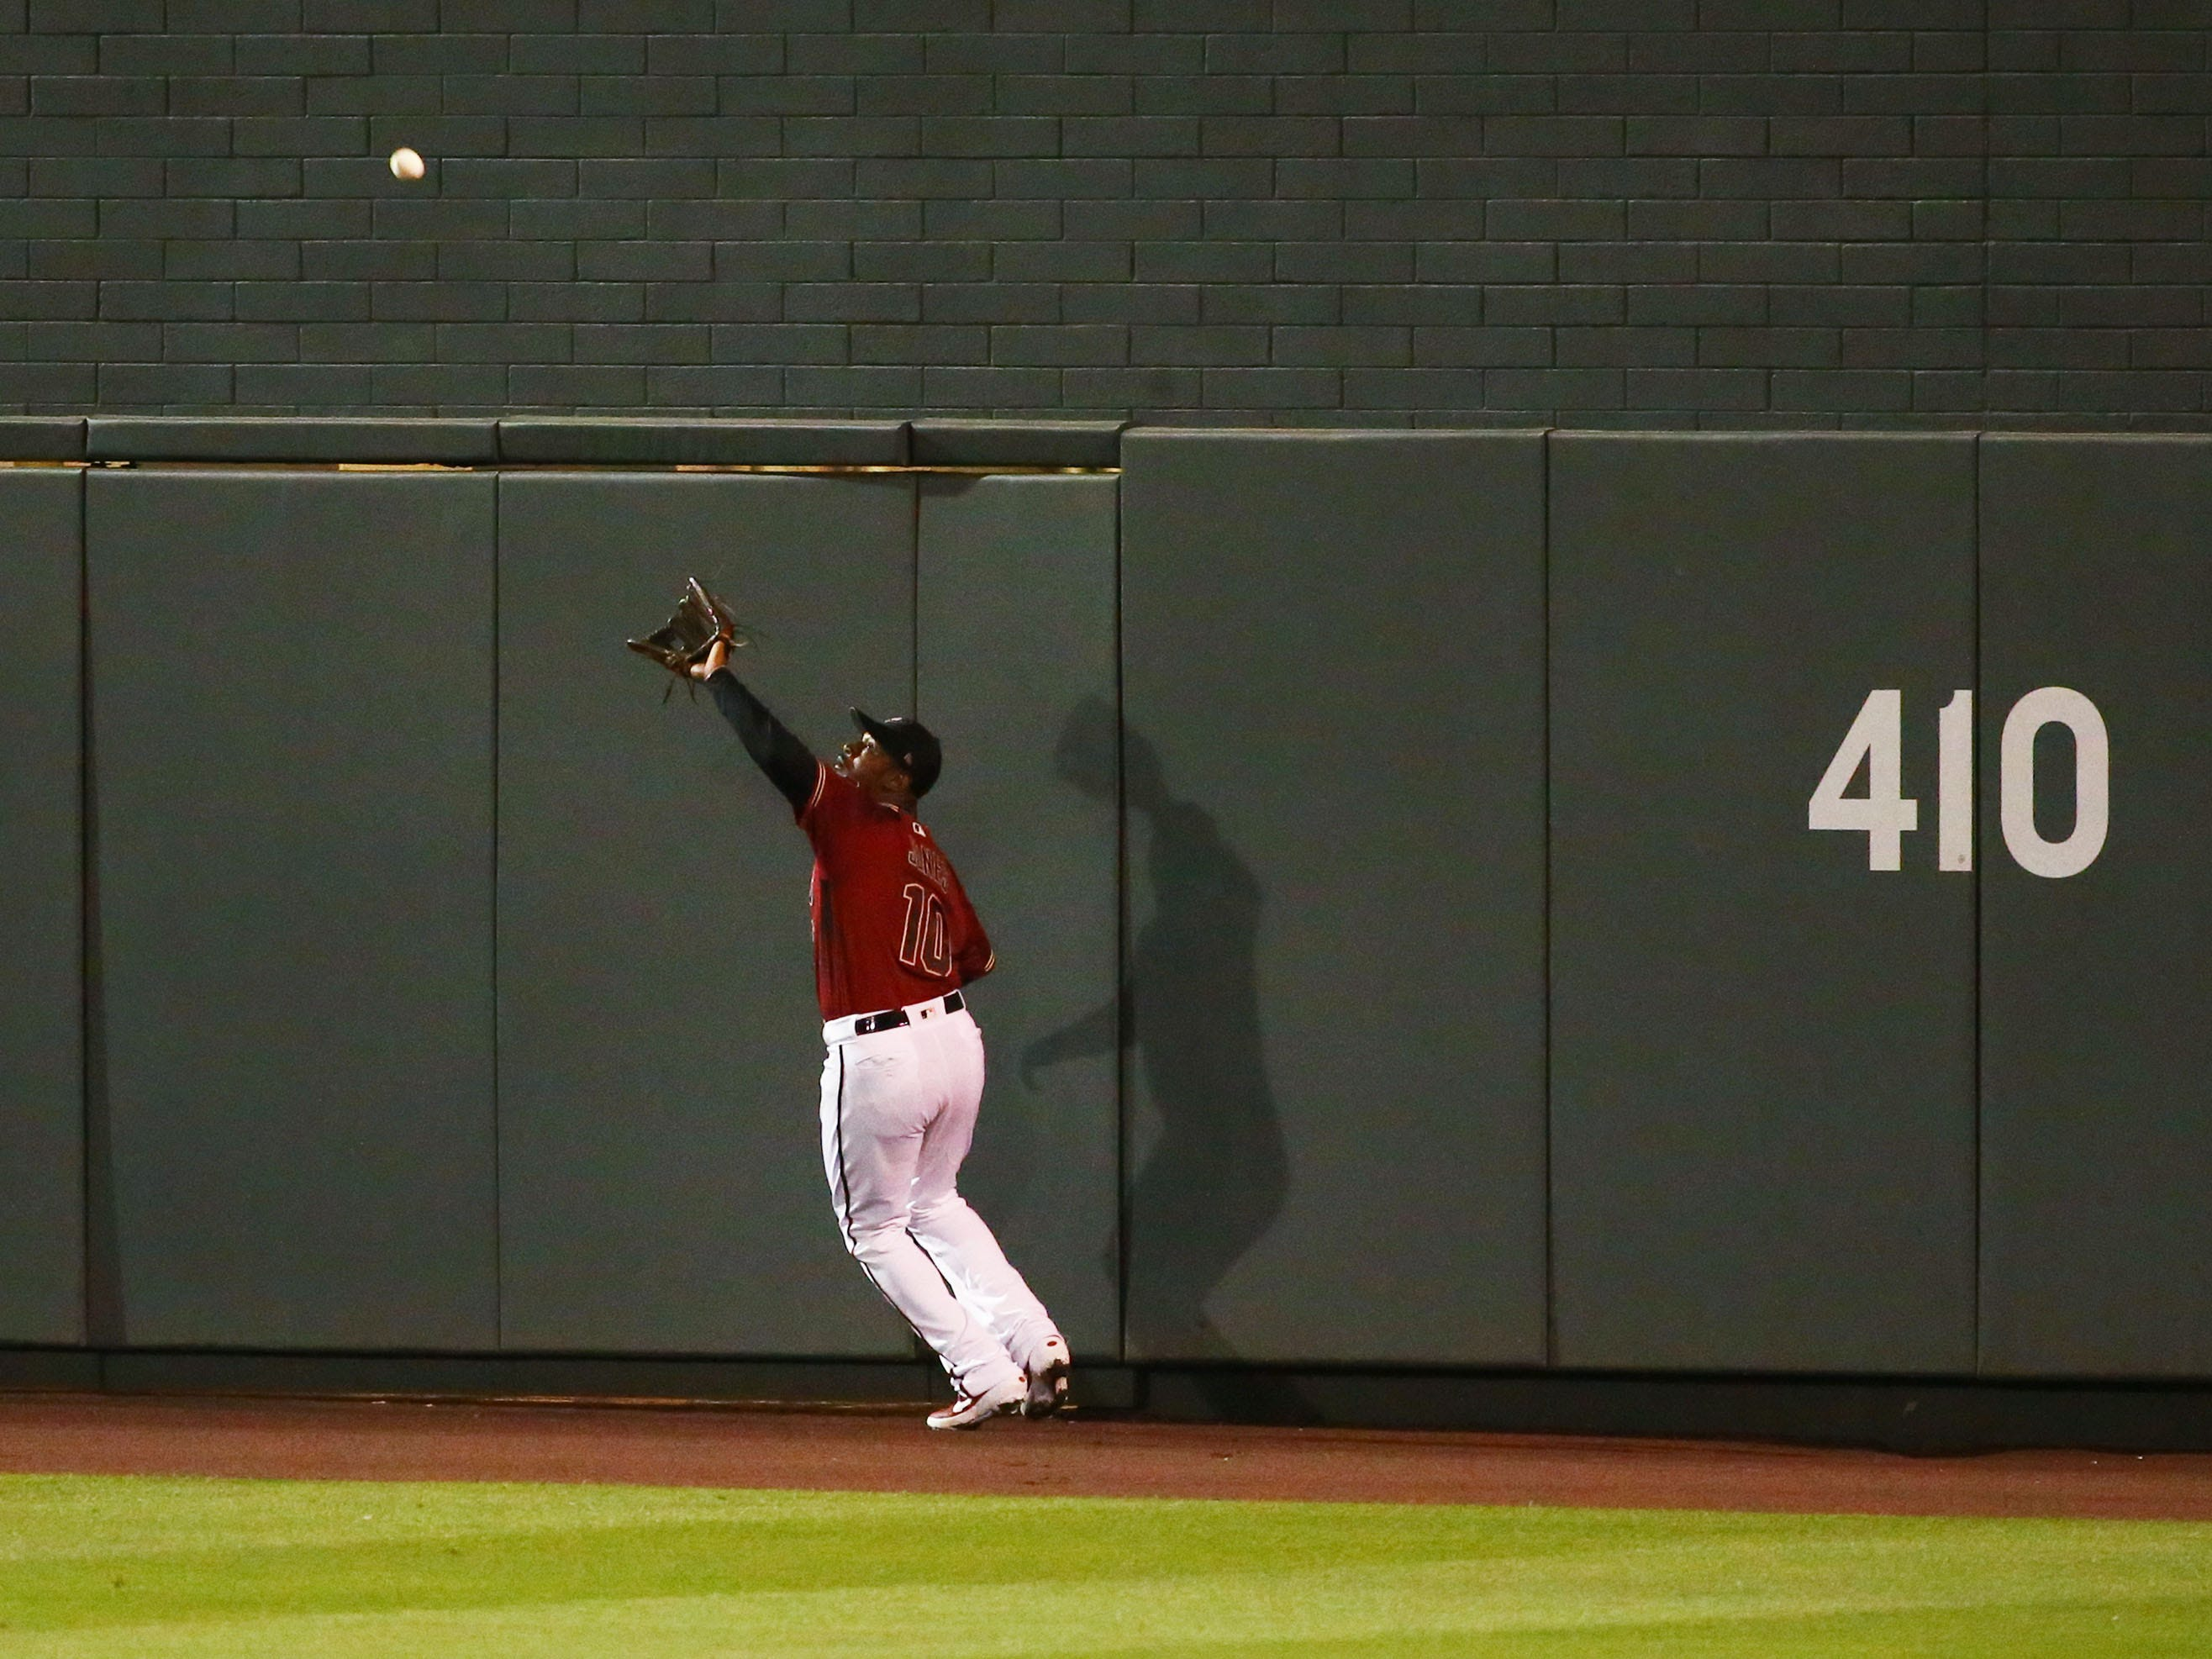 Arizona Diamondbacks center fielder Adam Jones (10) makes a catch on a ball hit by San Diego Padres Hunter Renfroe in the second inning during a spring training game on Mar. 19, 2019 at Salt River Fields in Scottsdale, Ariz.